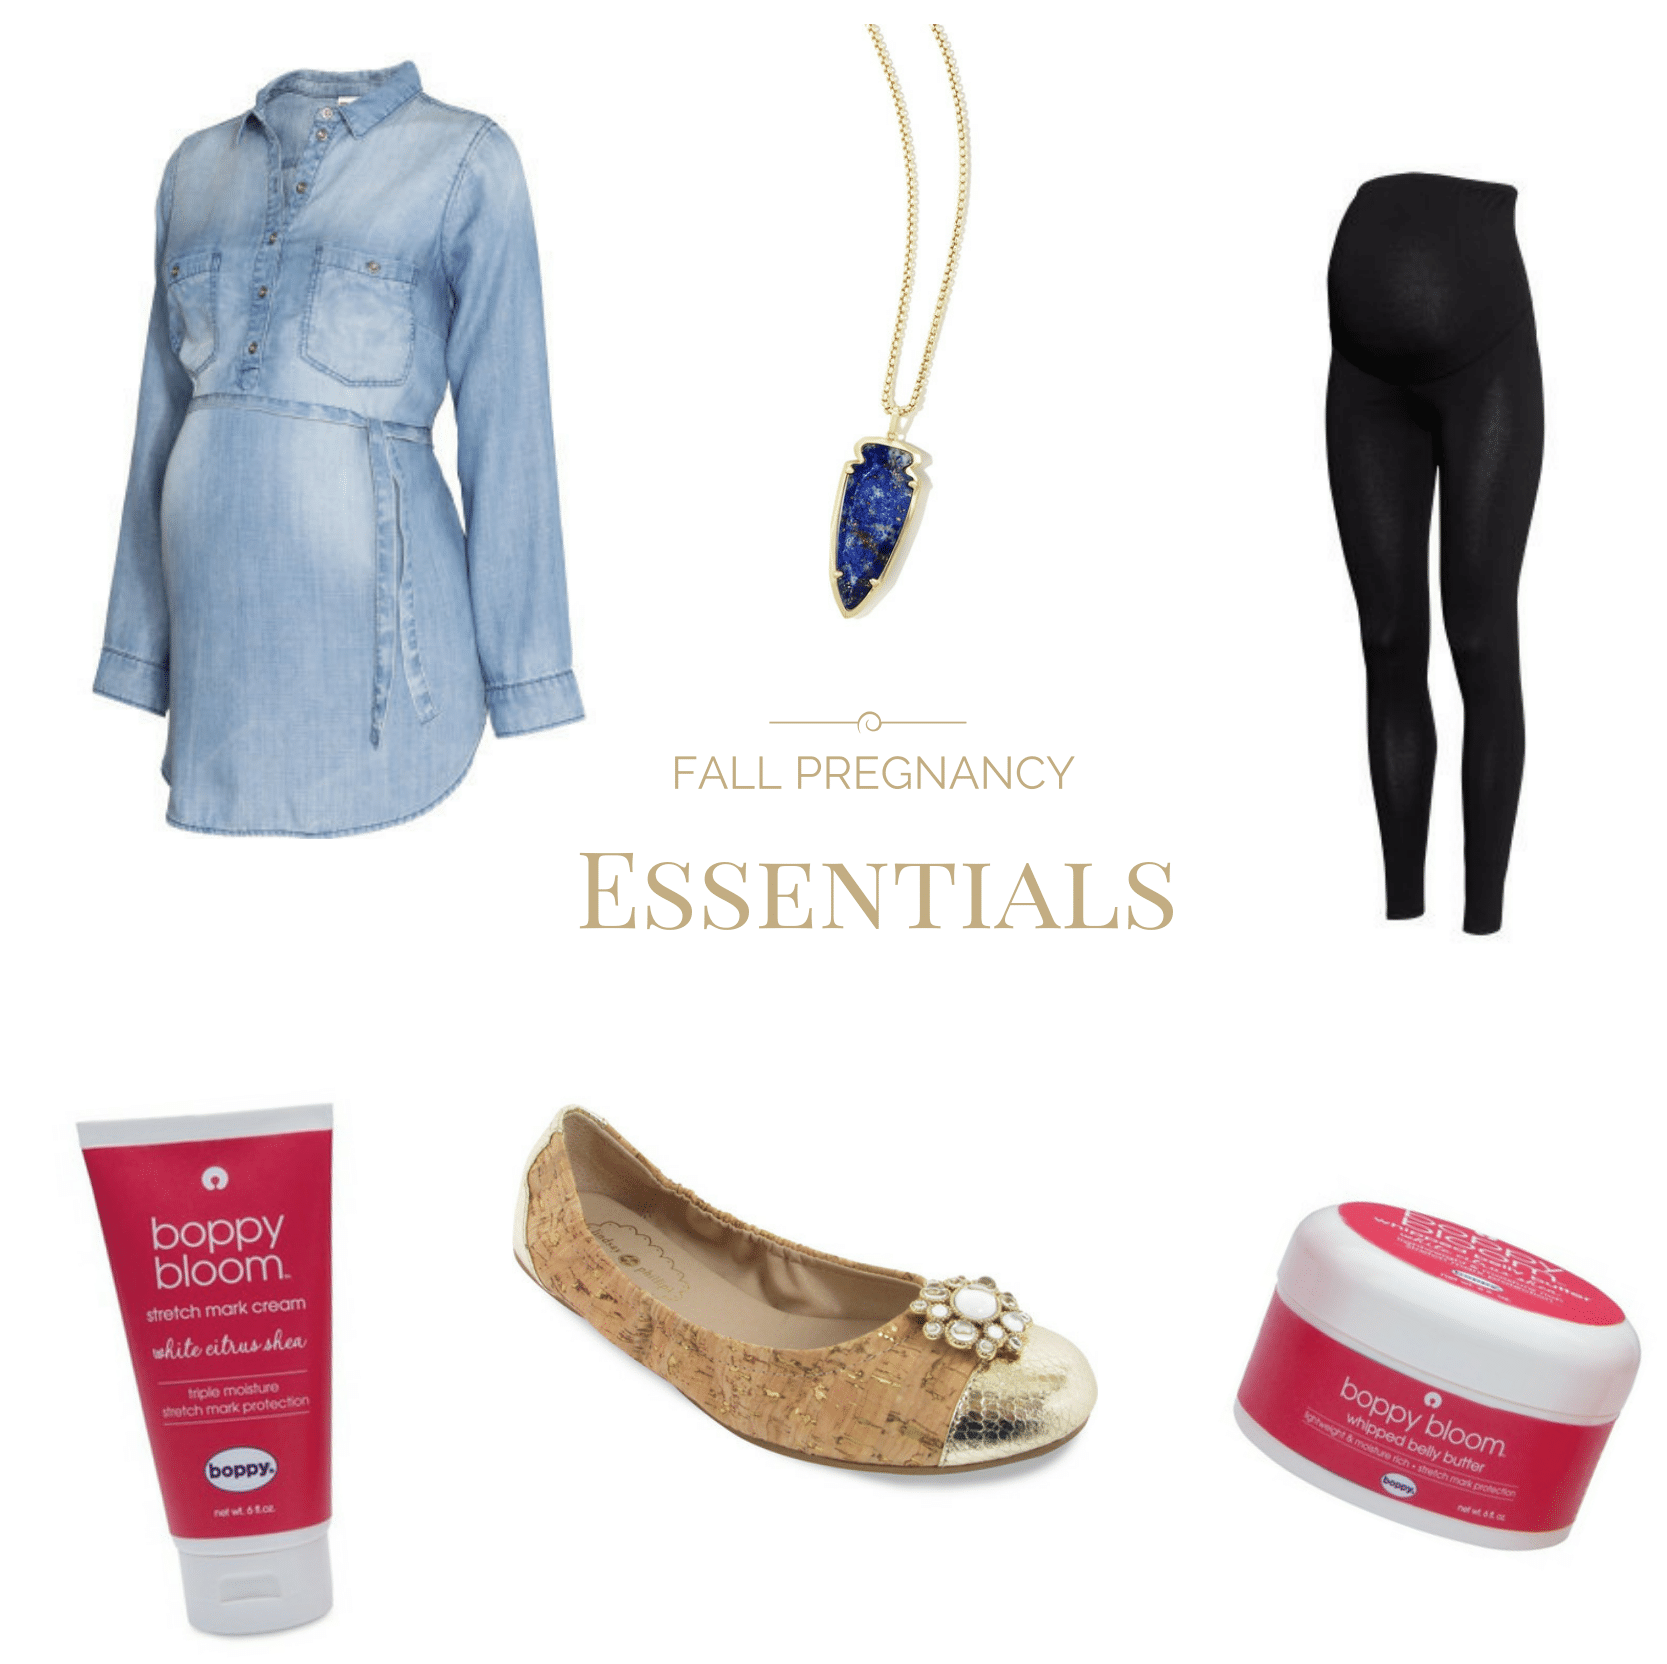 Fall Pregnancy Essentials Fashion Trends The Mommy